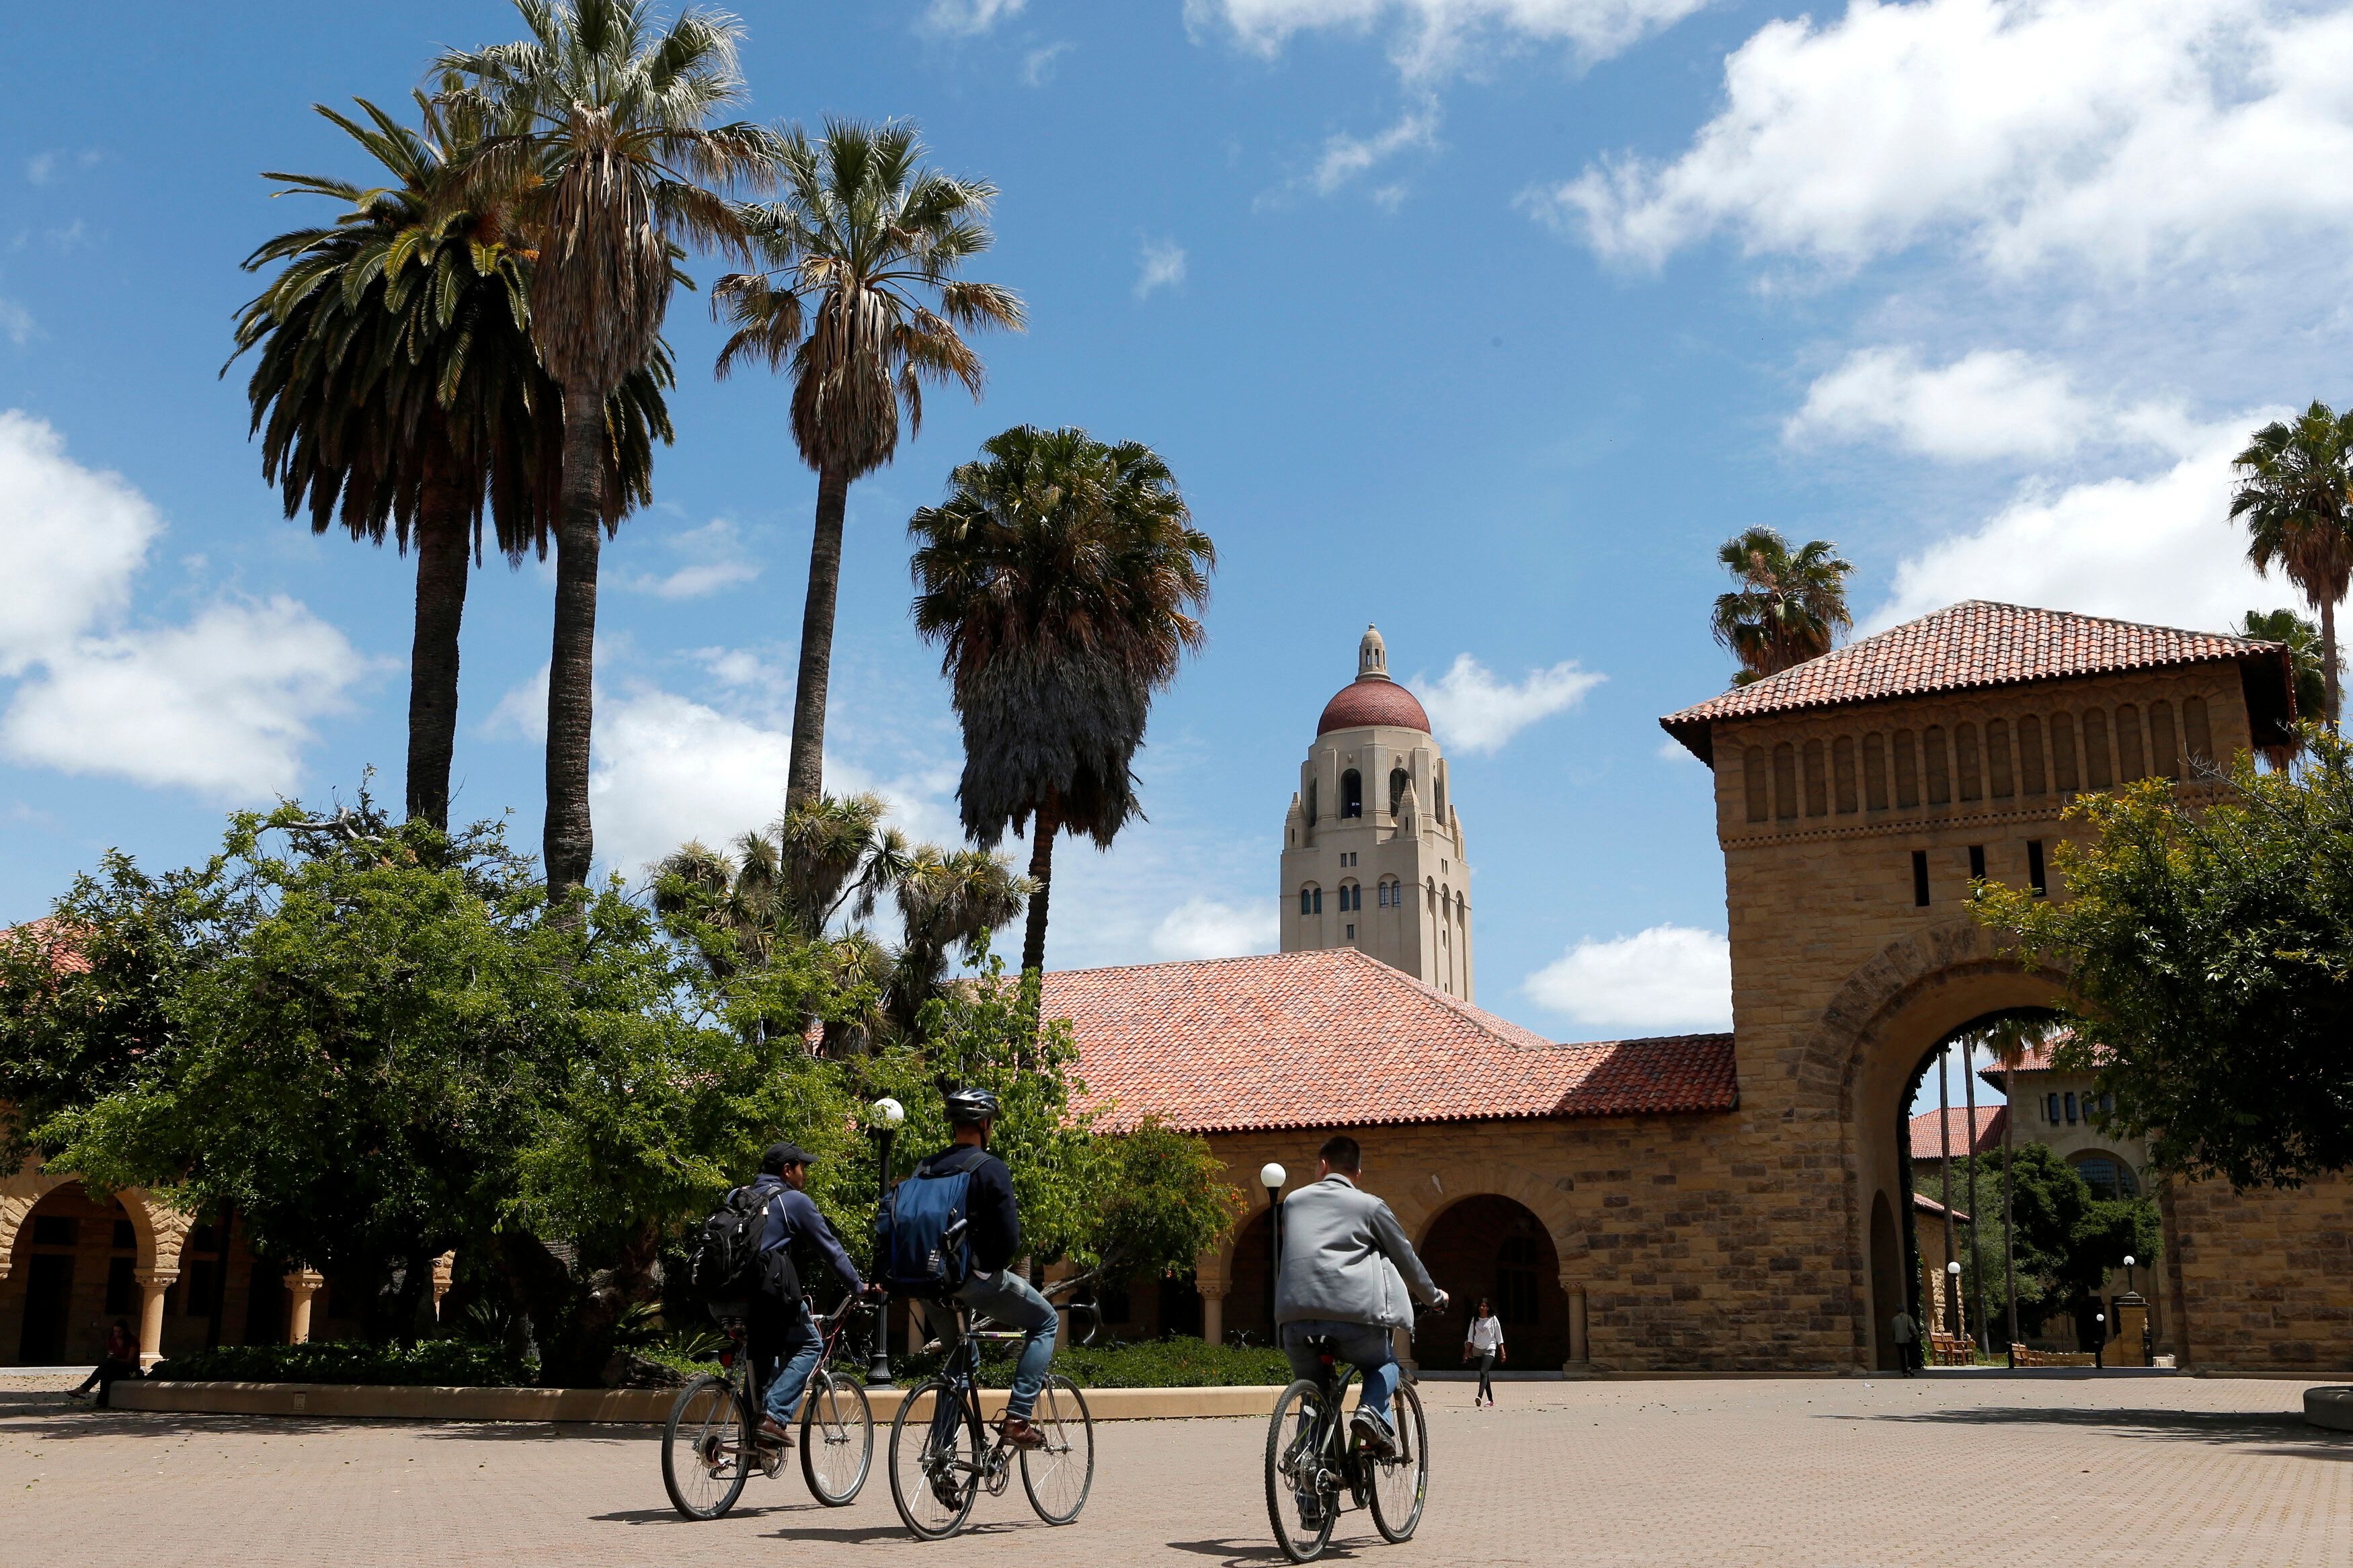 Cyclists traverse the main quad on Stanford University's campus in Stanford, California, U.S. on May 9, 2014.  REUTERS/Beck Diefenbach/File Photo